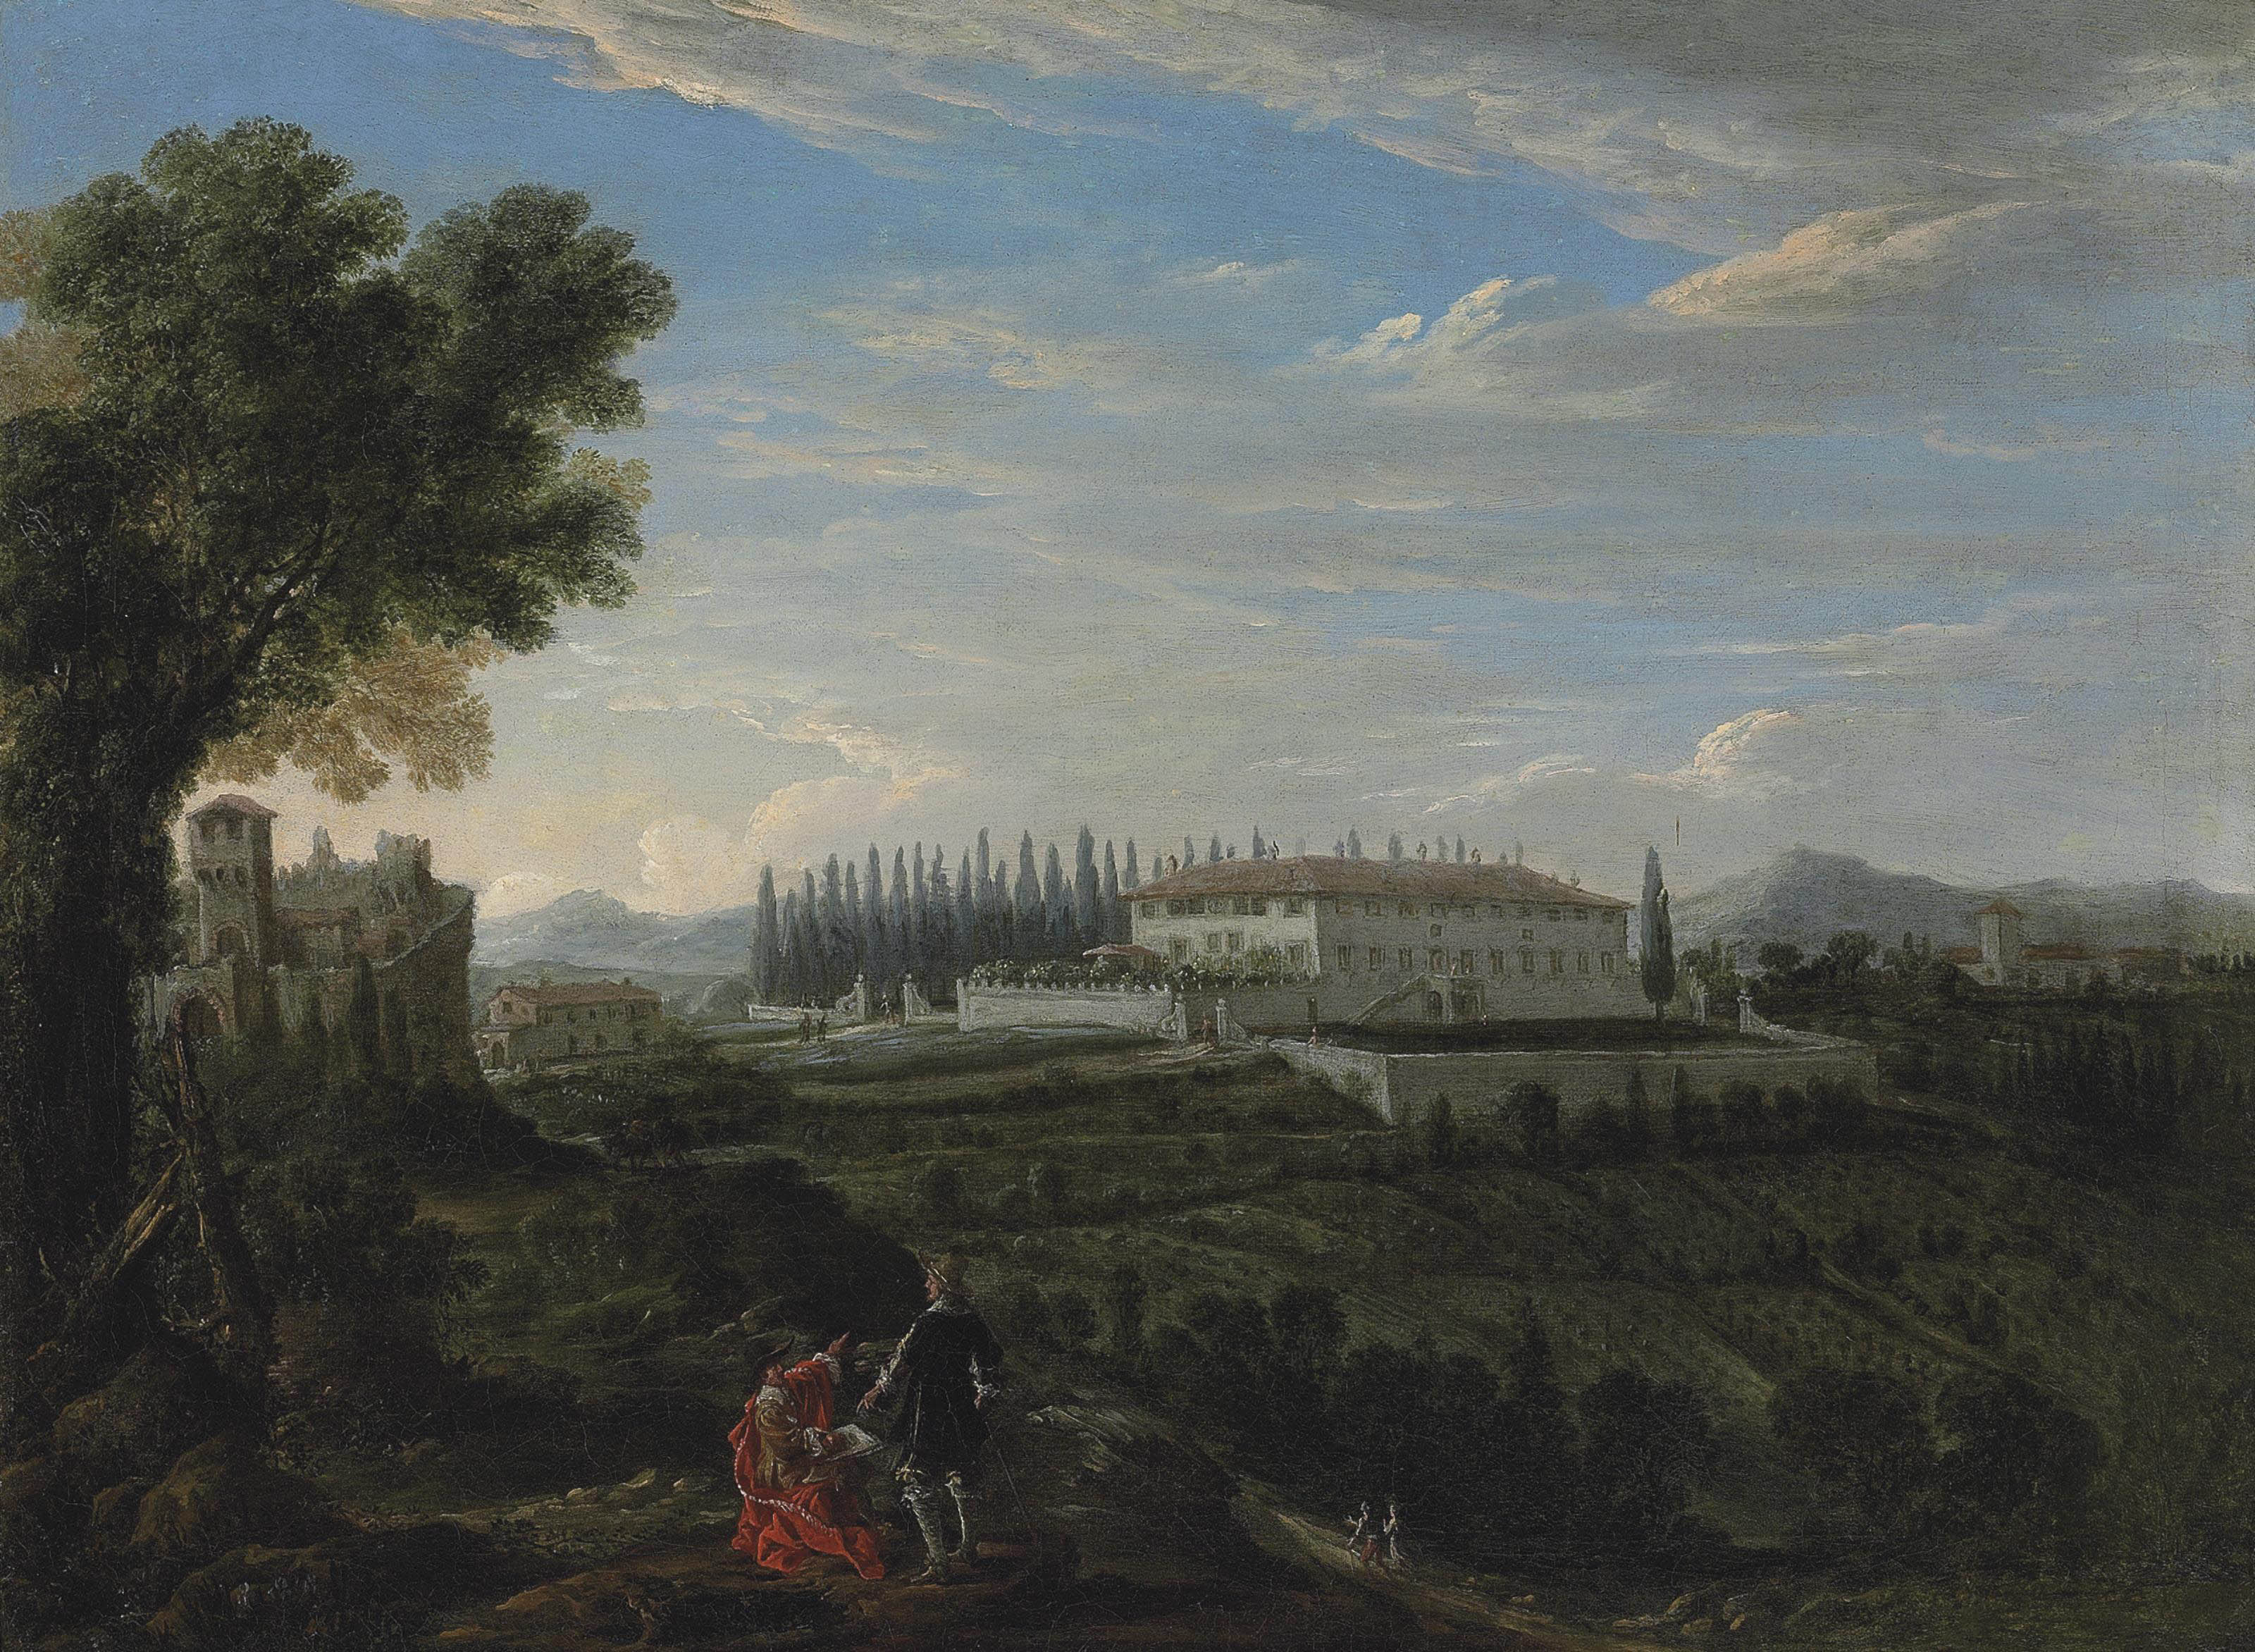 An Italianate wooded mountainous landscape with a Tuscan villa and a fortress, an artist sketching in the foreground, a church and mountains beyond